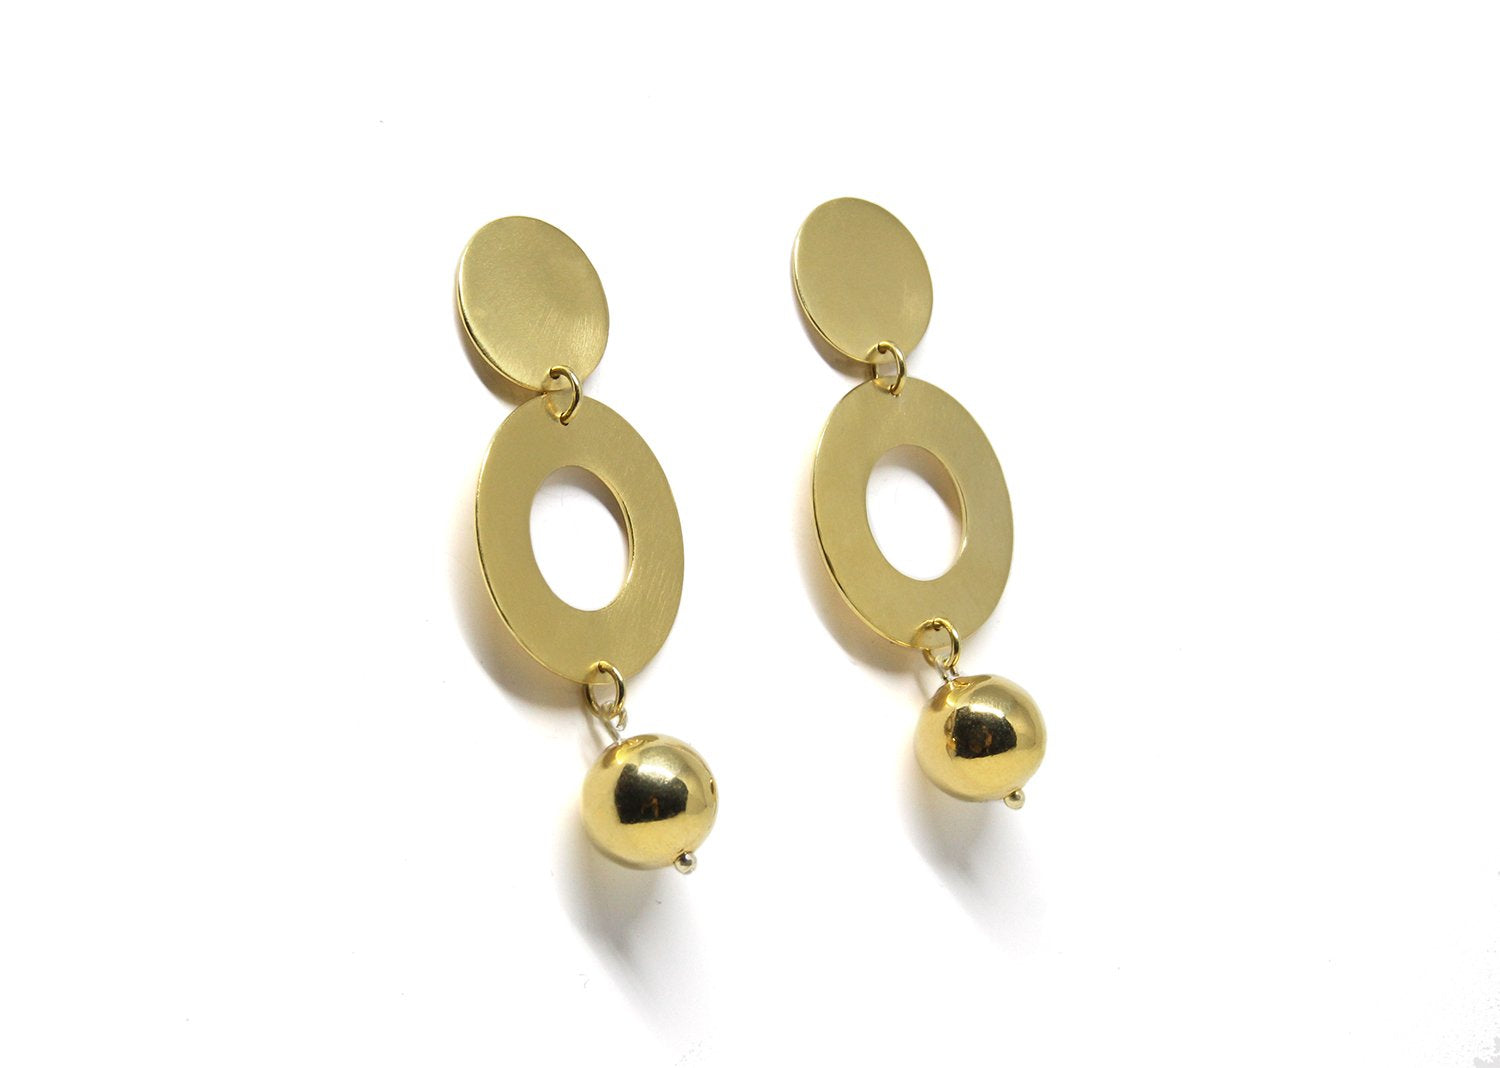 llayers jewelry dangly gold plated sphere earrings satellite bijoux boucles oreilles pendantes boule or